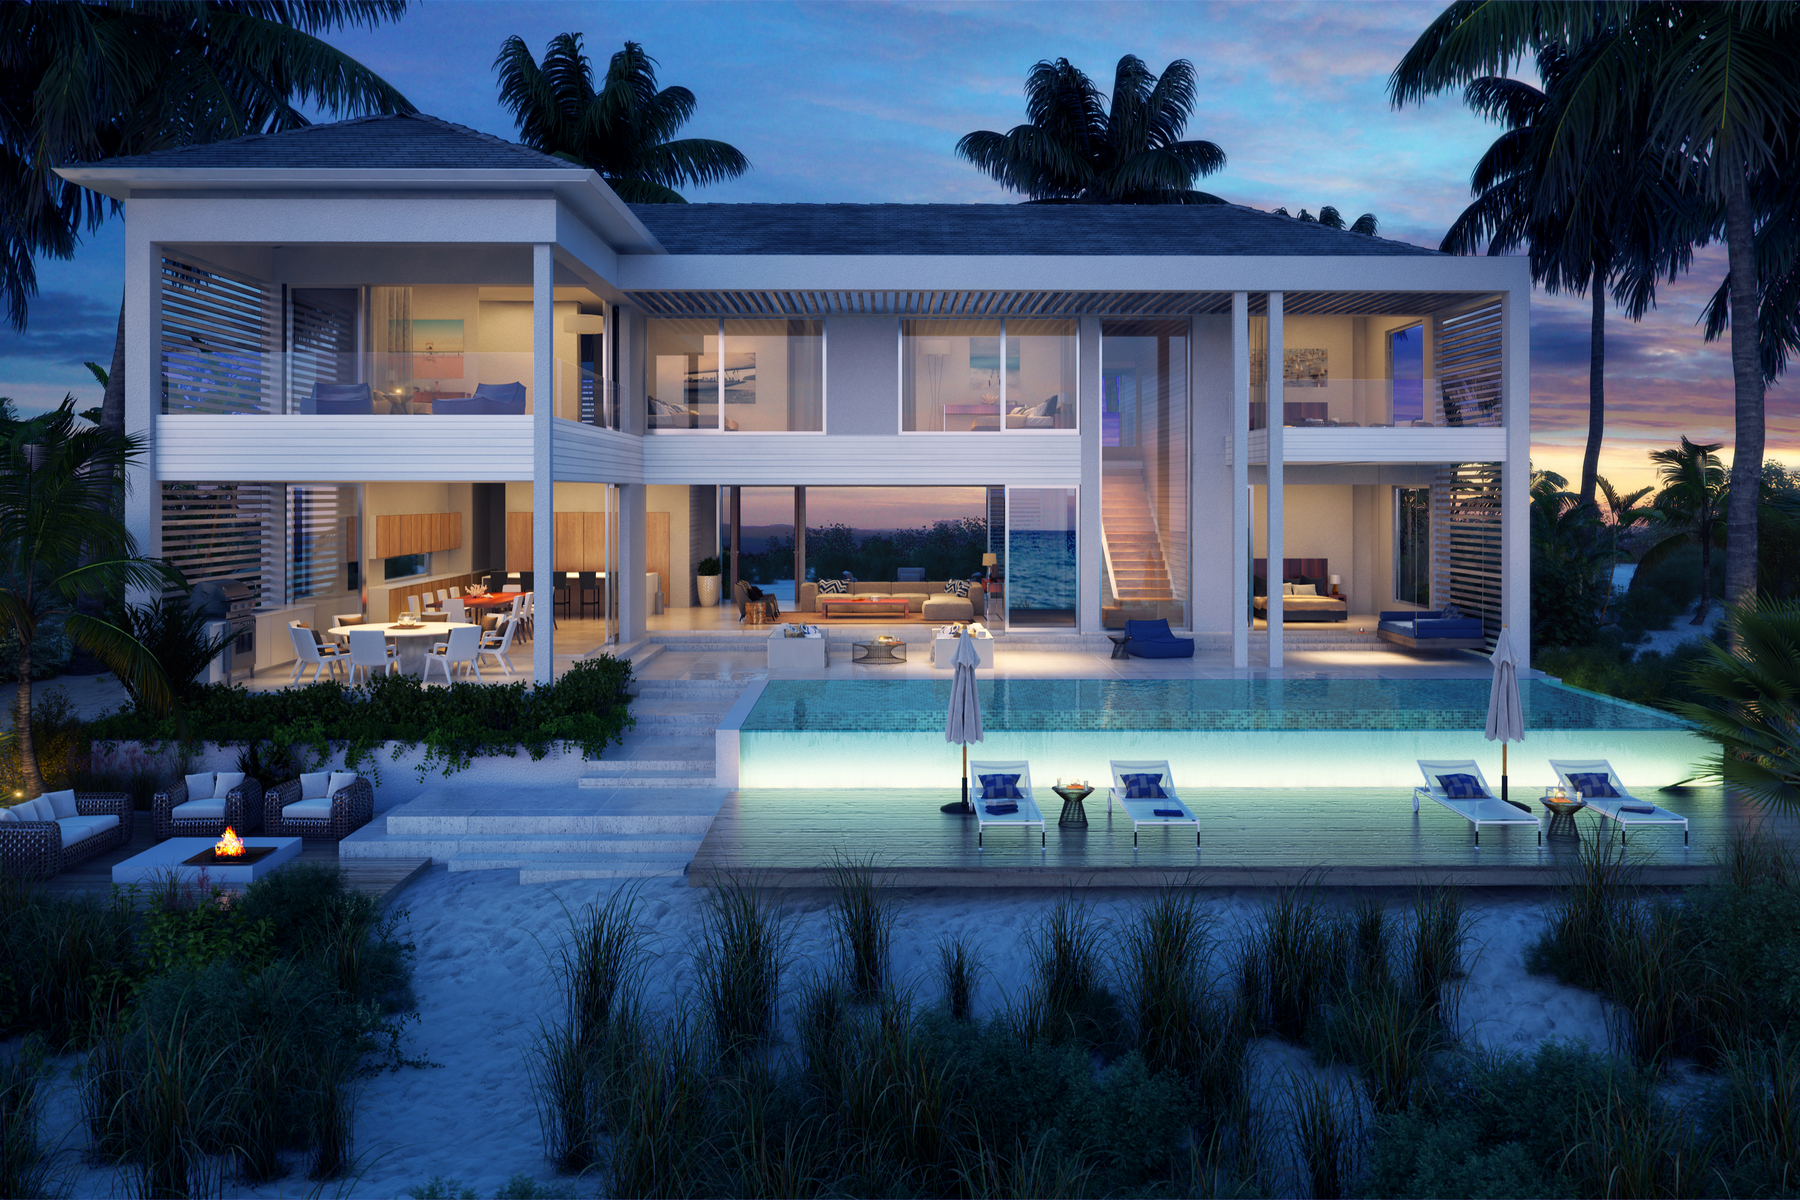 獨棟家庭住宅 為 出售 在 BEACH ENCLAVE GRACE BAY Design B Beachfront, Grace Bay, 普羅維登夏, TKCA 1ZZ 特克斯和凱科斯群島